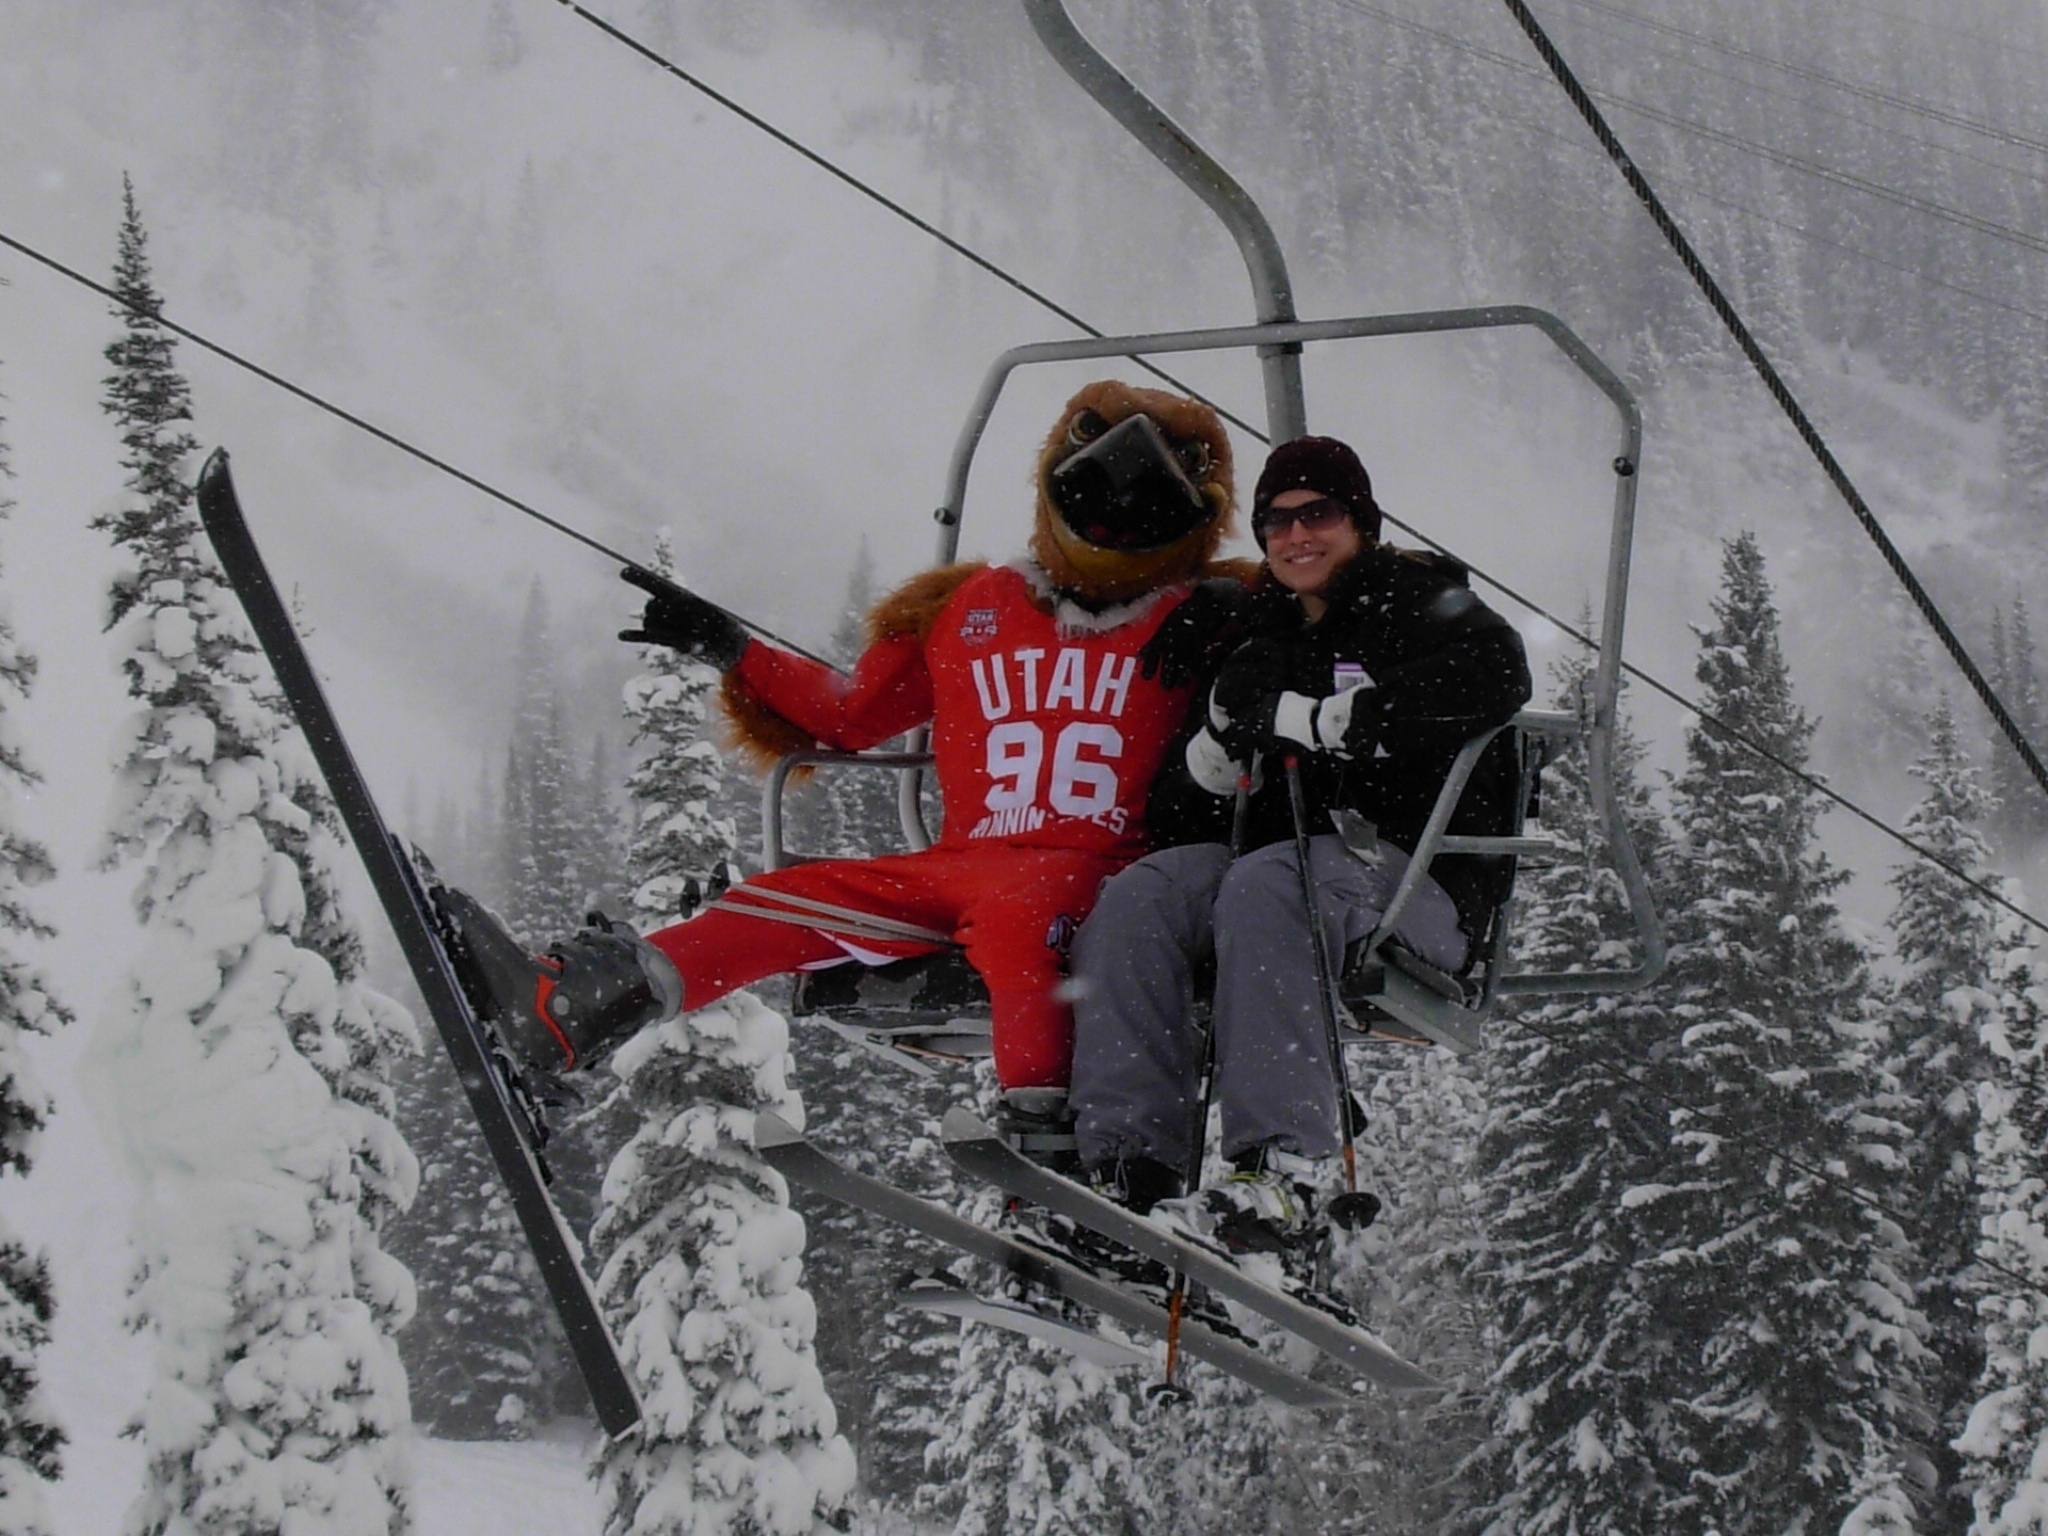 Swoop, the University of Utah's mascot, rides the chair at Snowbird Resort, ready for another great powder run at Ski and Shred Red Day, December 2007.